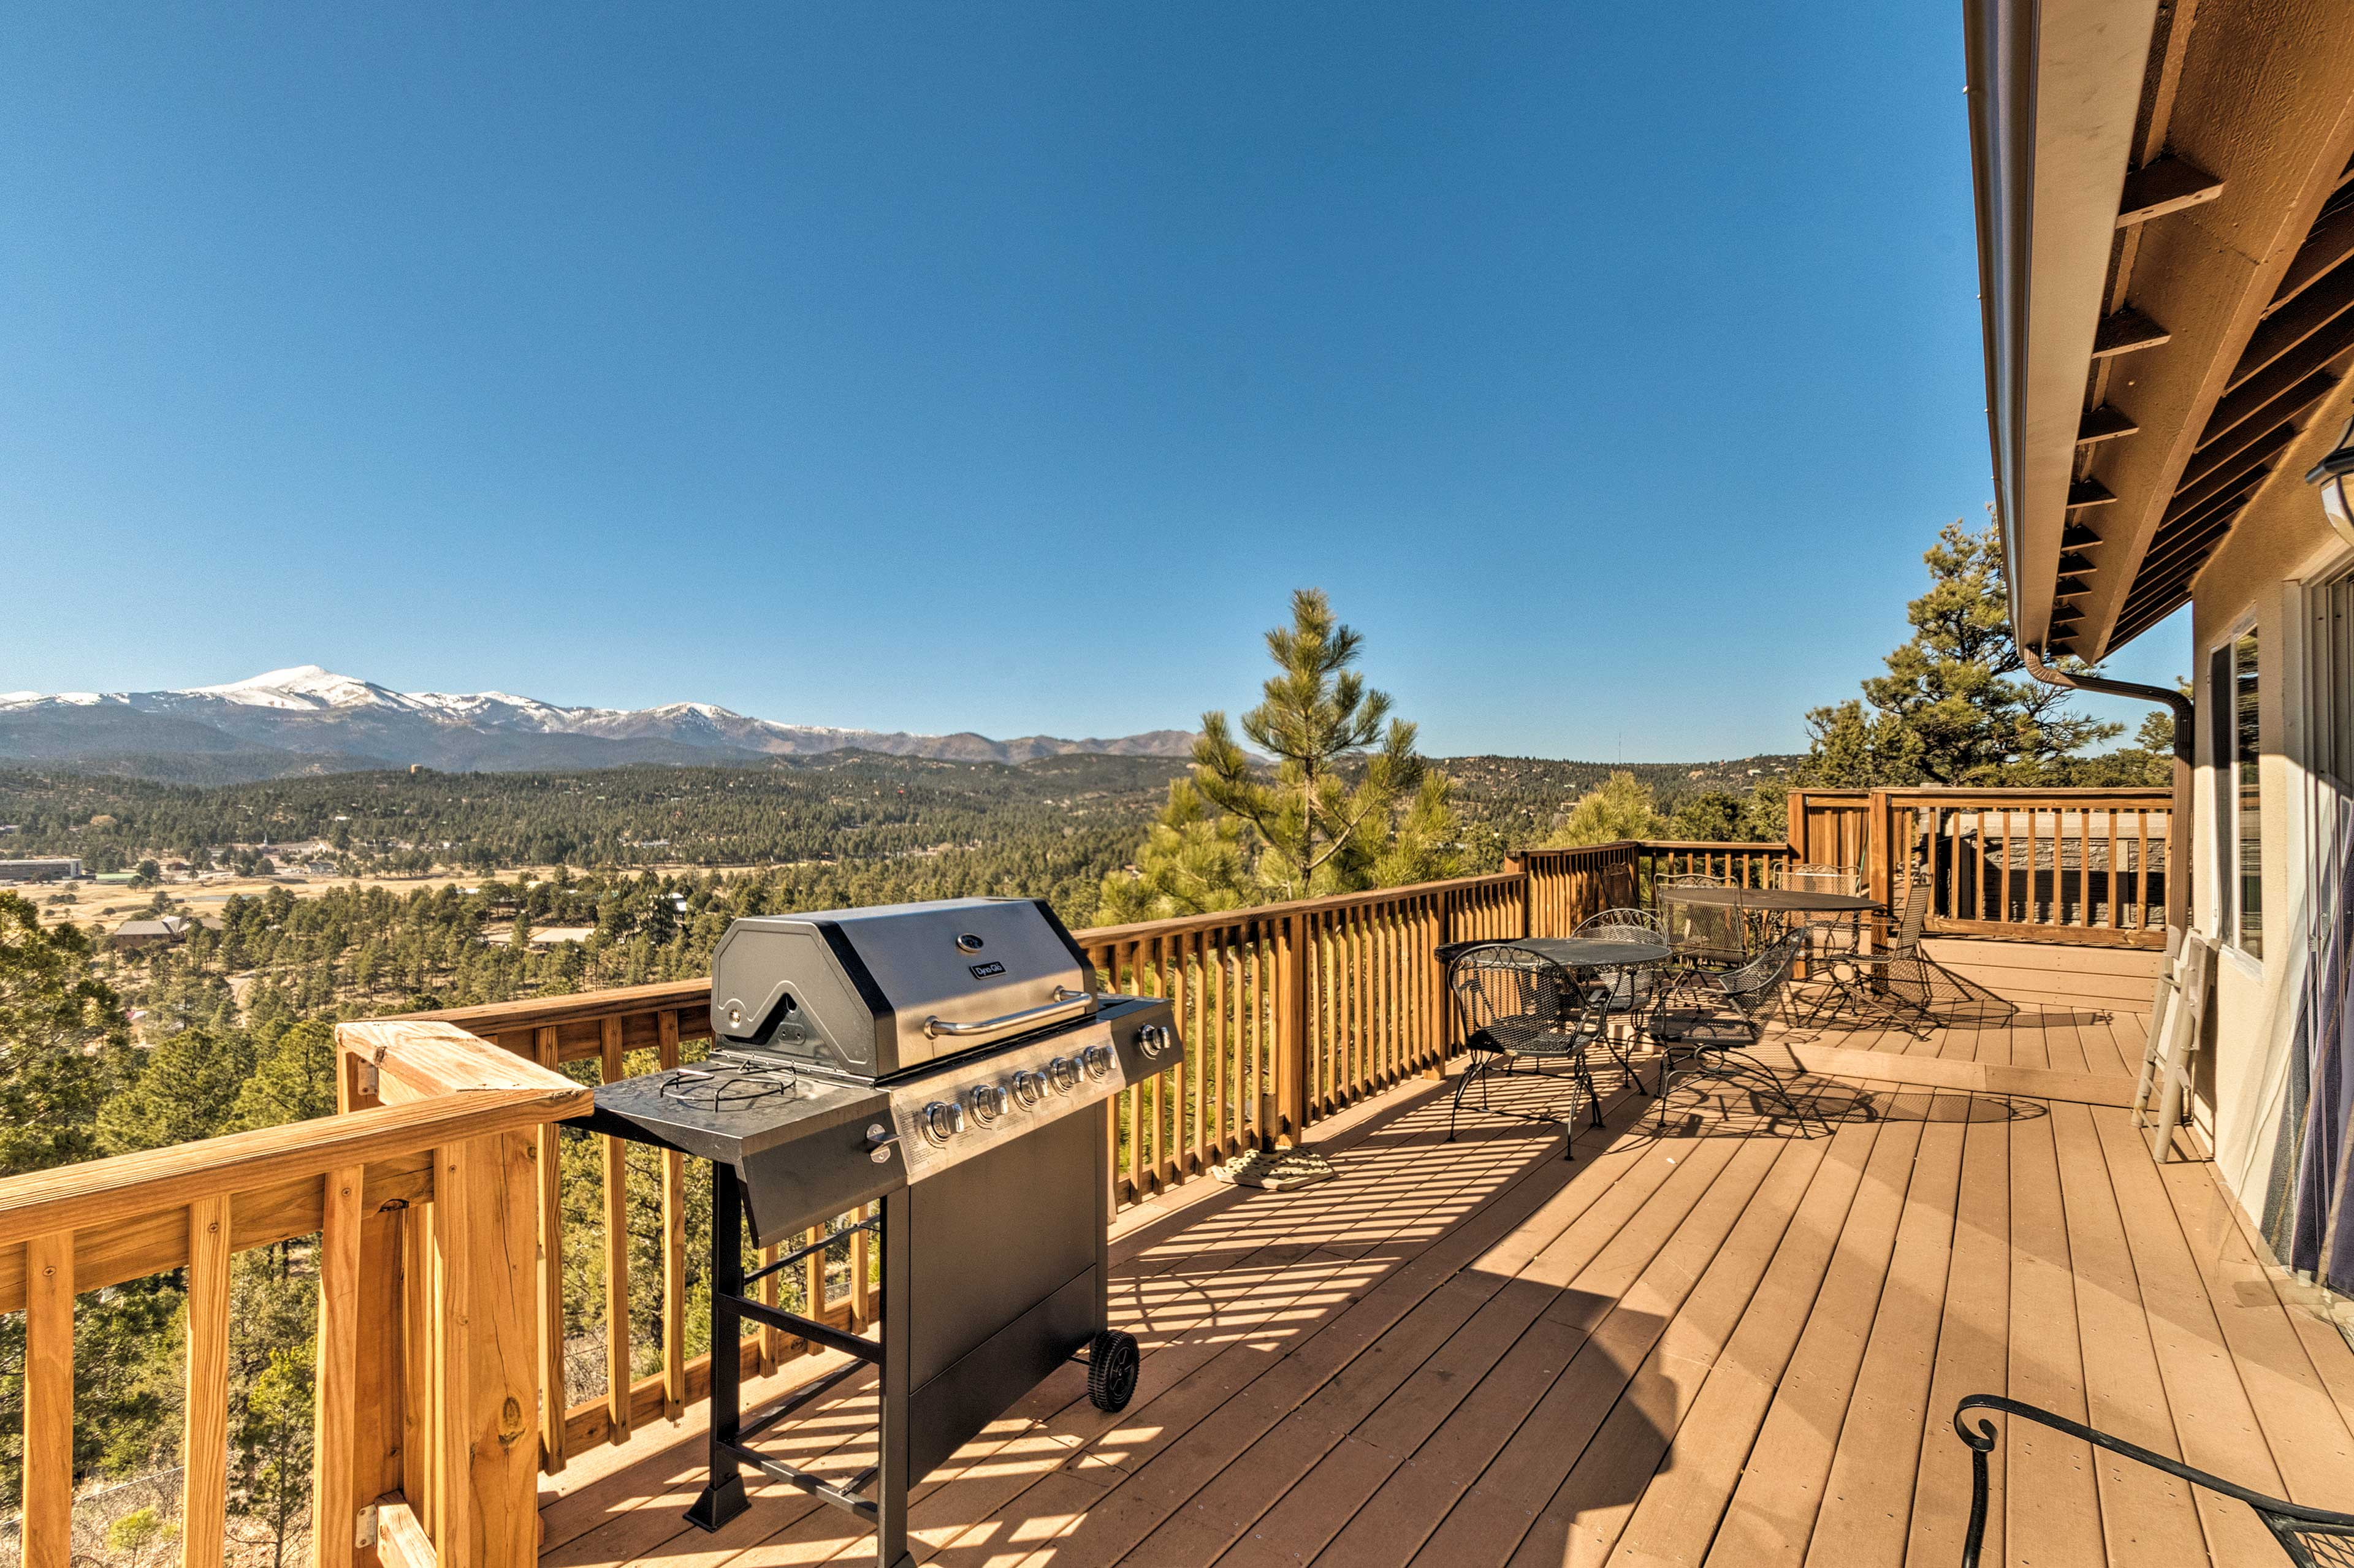 Fire up the gas grill for a barbecue dinner out on the deck.